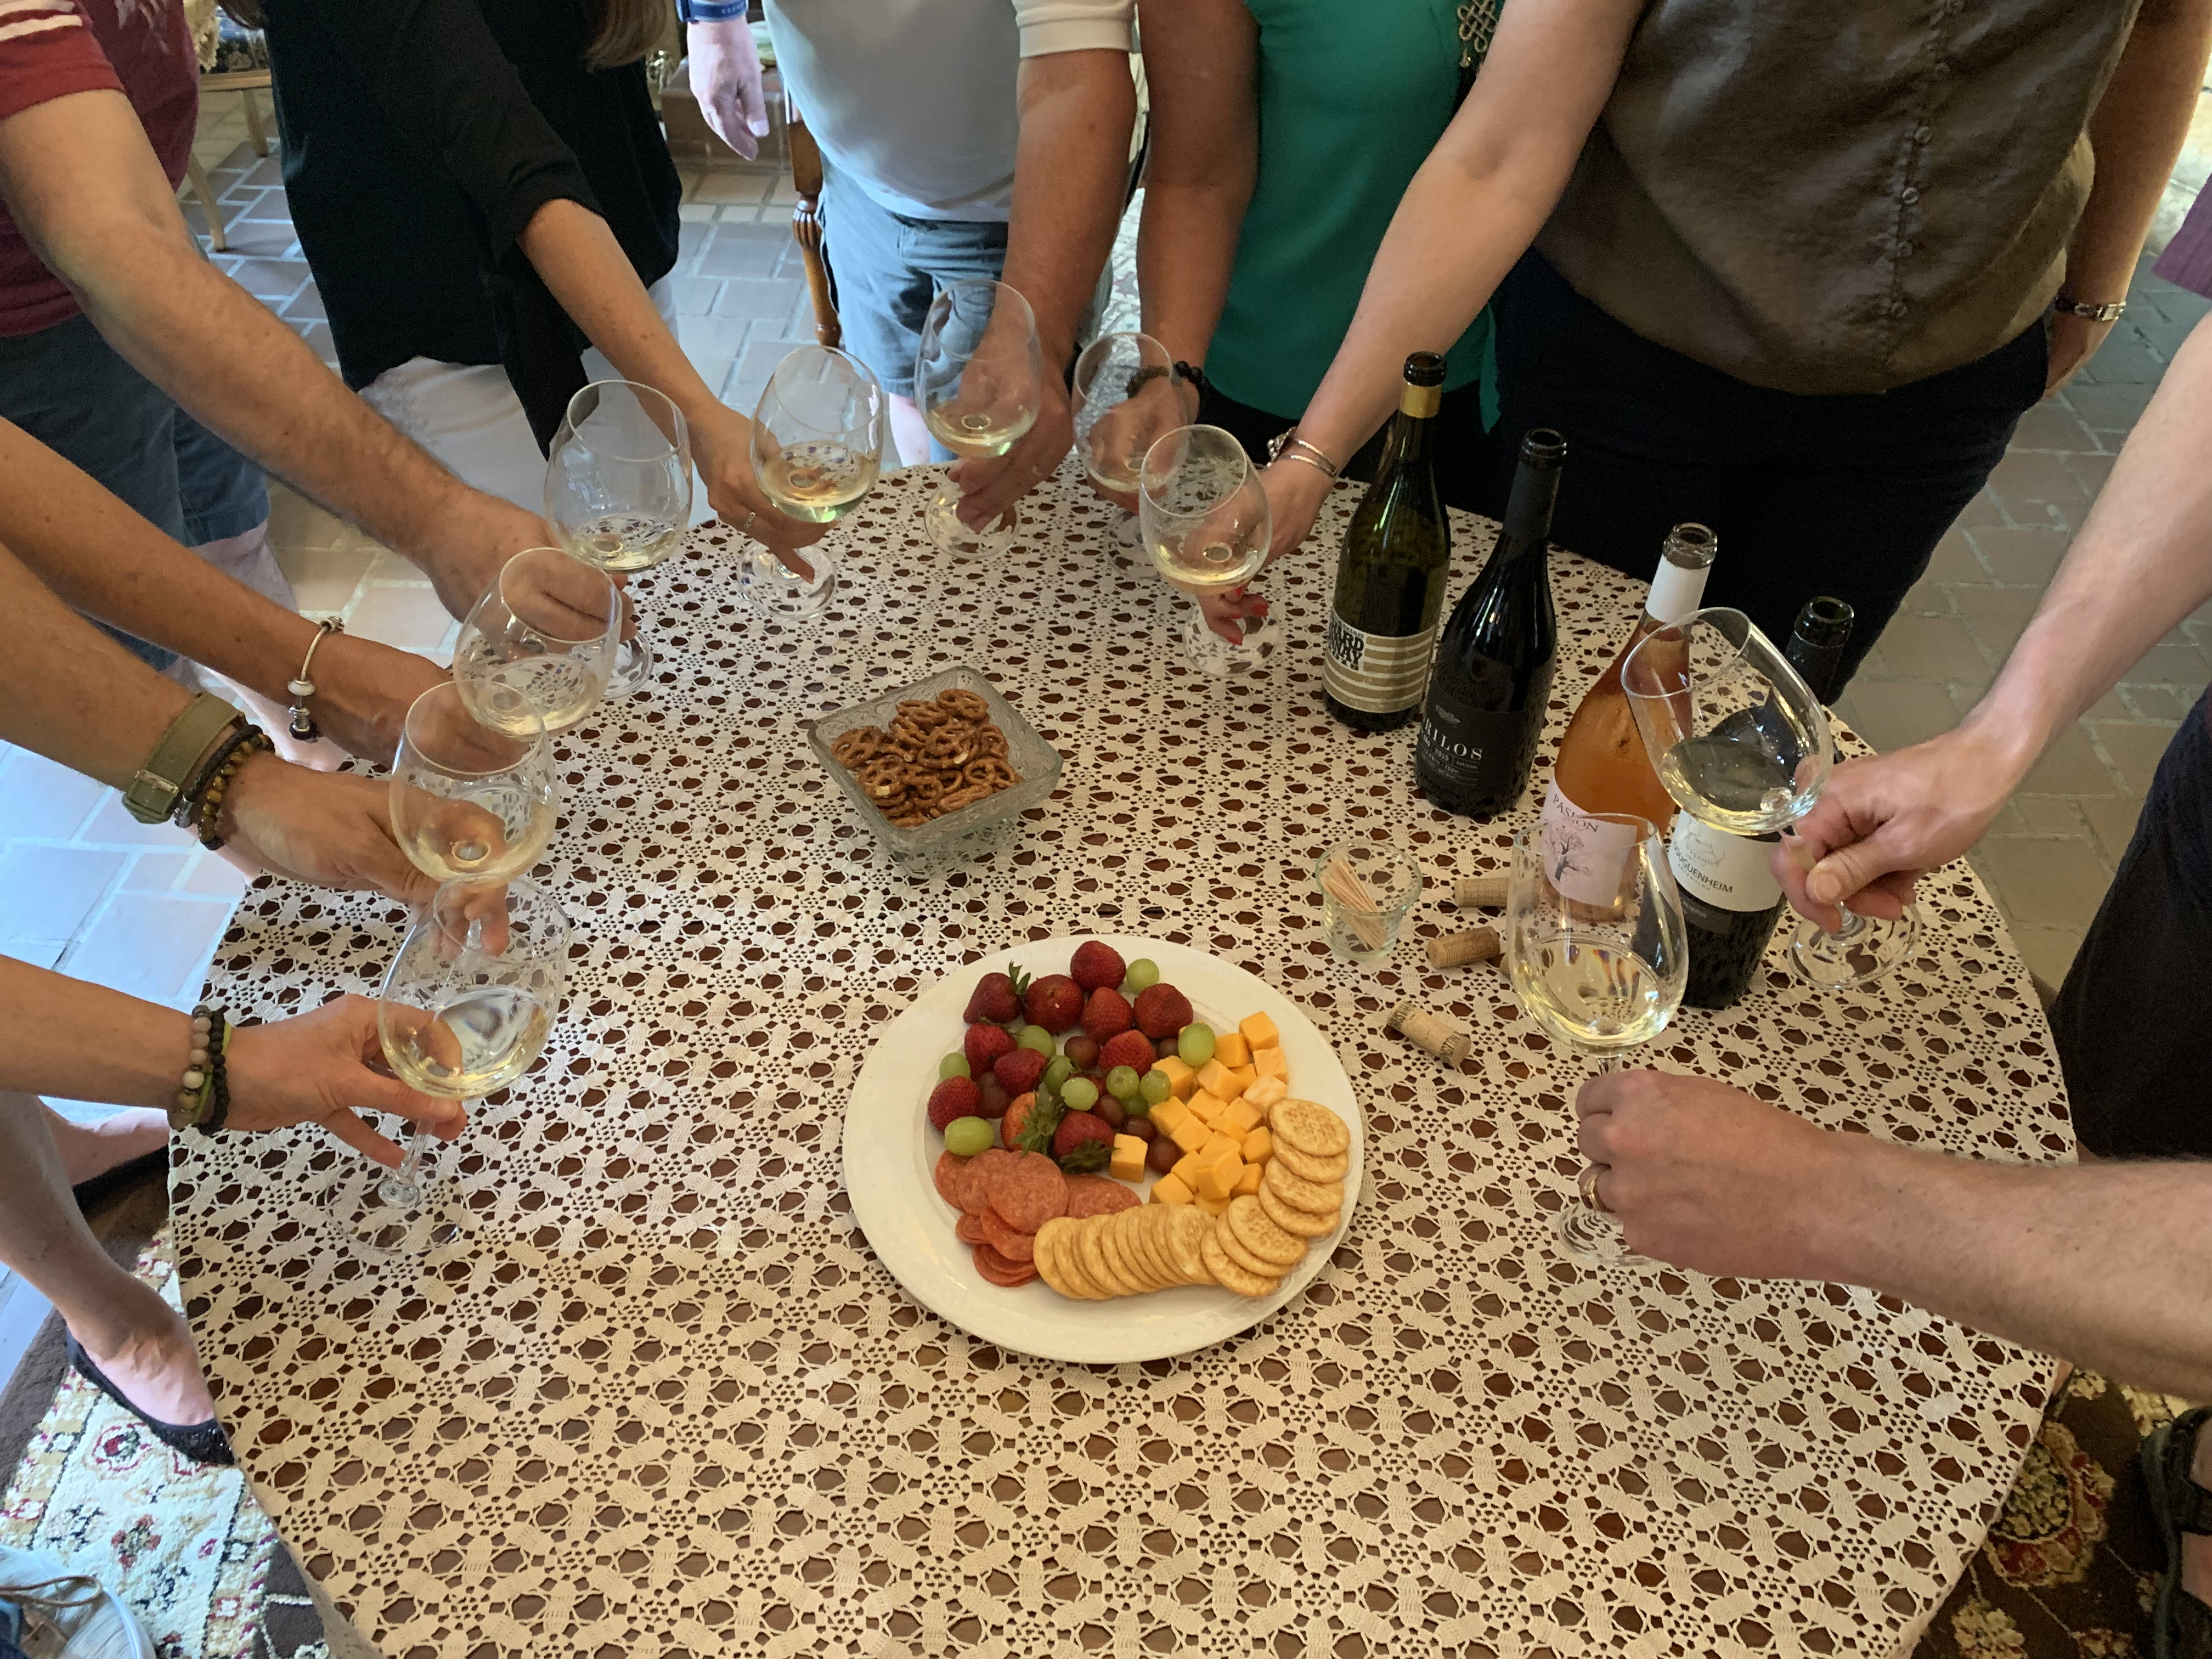 Wine, fruit, cheese and crackers at wine tasting event